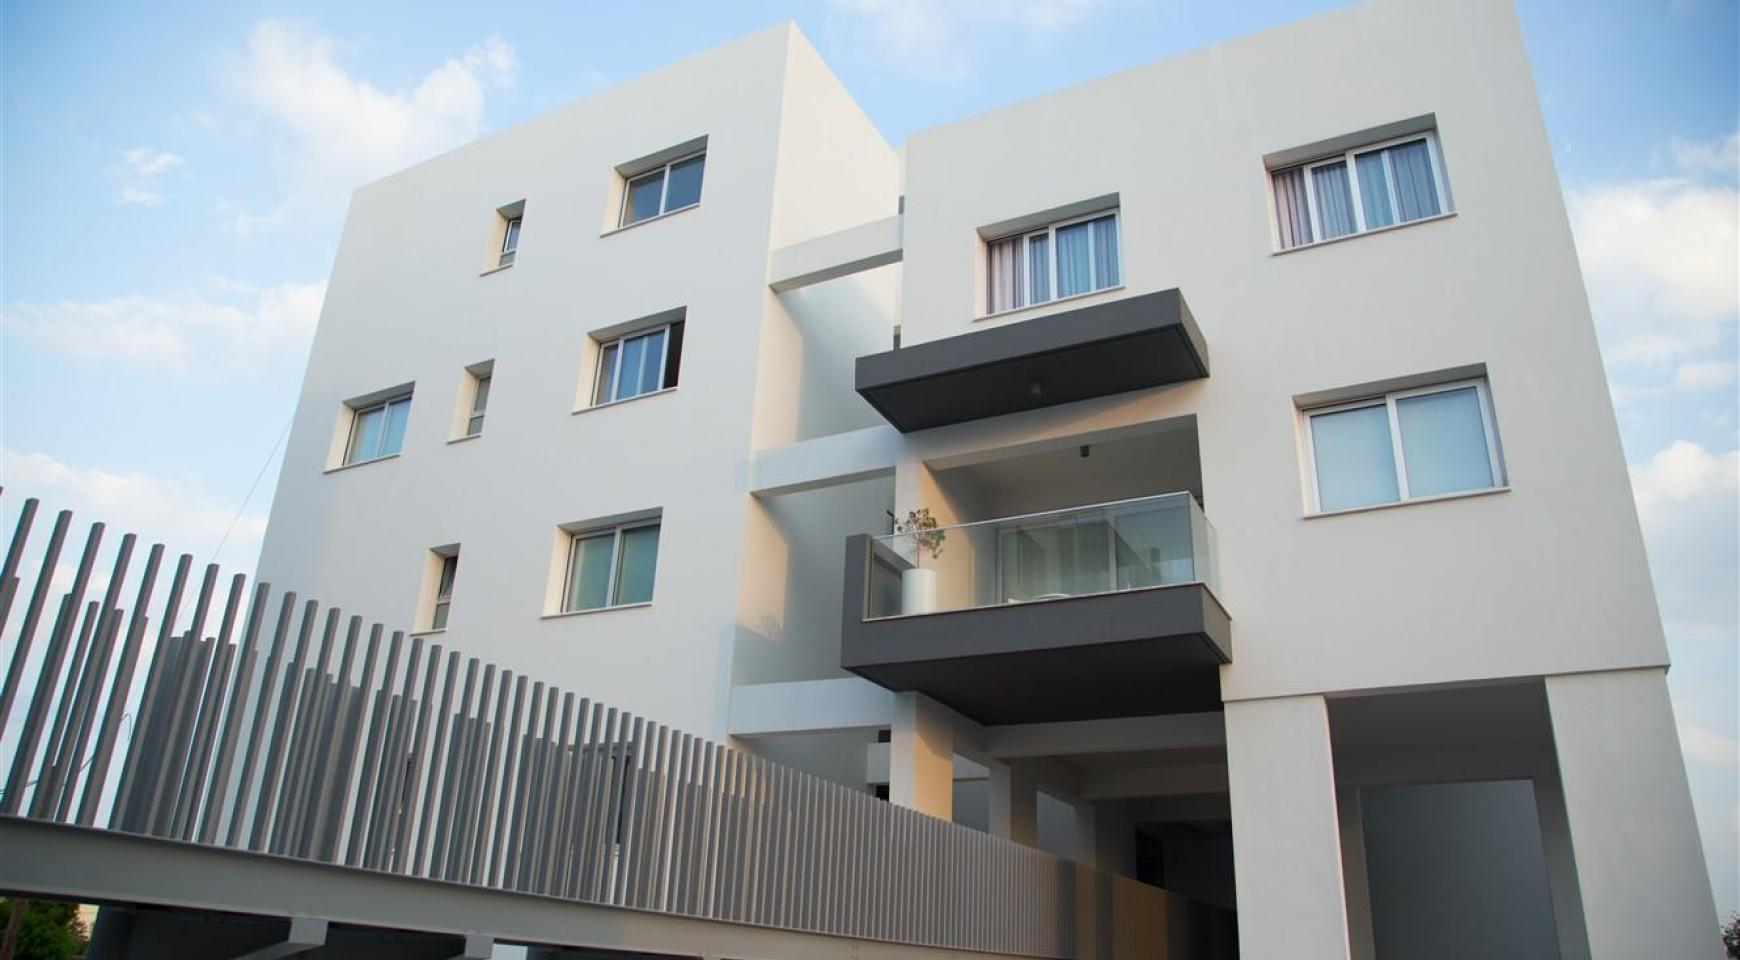 Elite 3 Bedroom Penthouse with private Swimming Pool on the Roof - 11